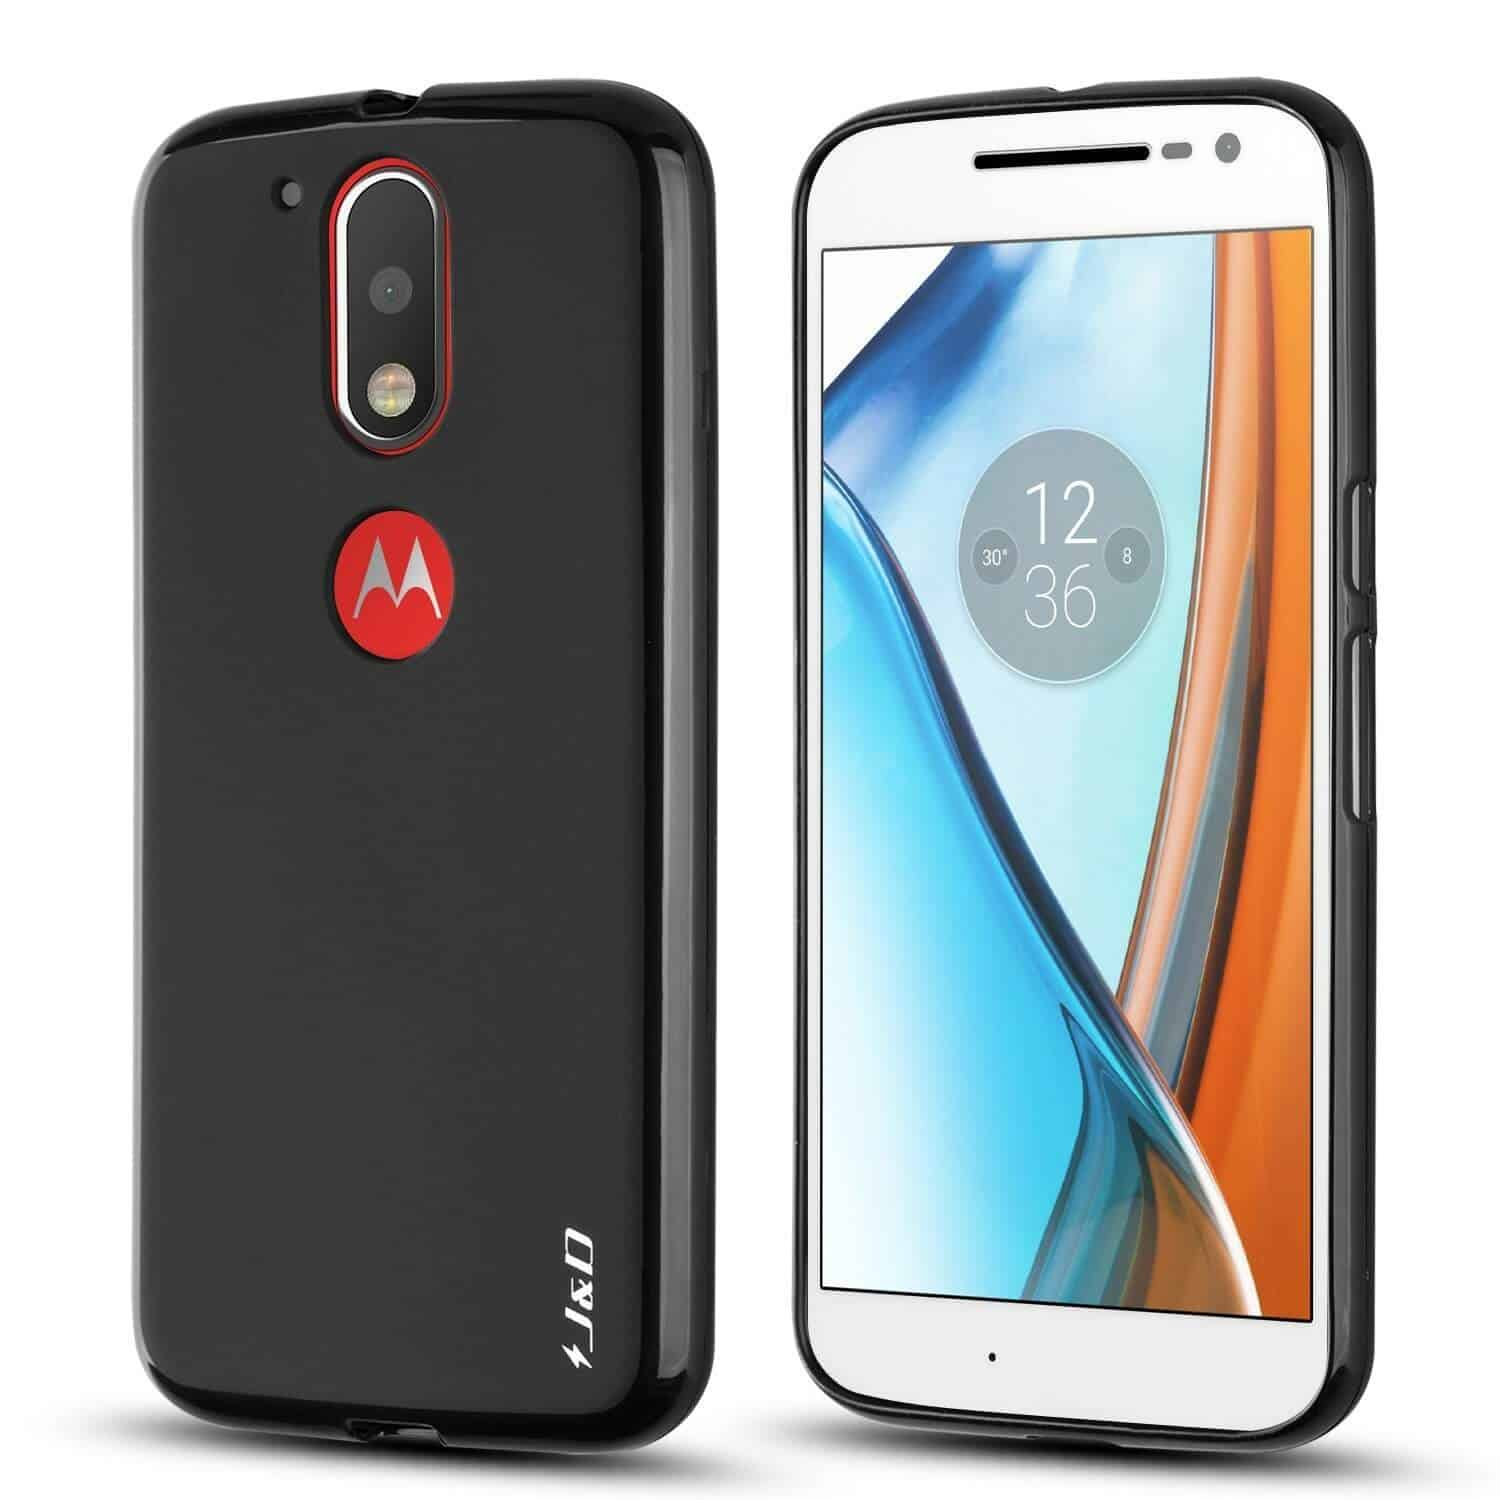 Top 10 Best Cases For The Lenovo Moto G4 Plus